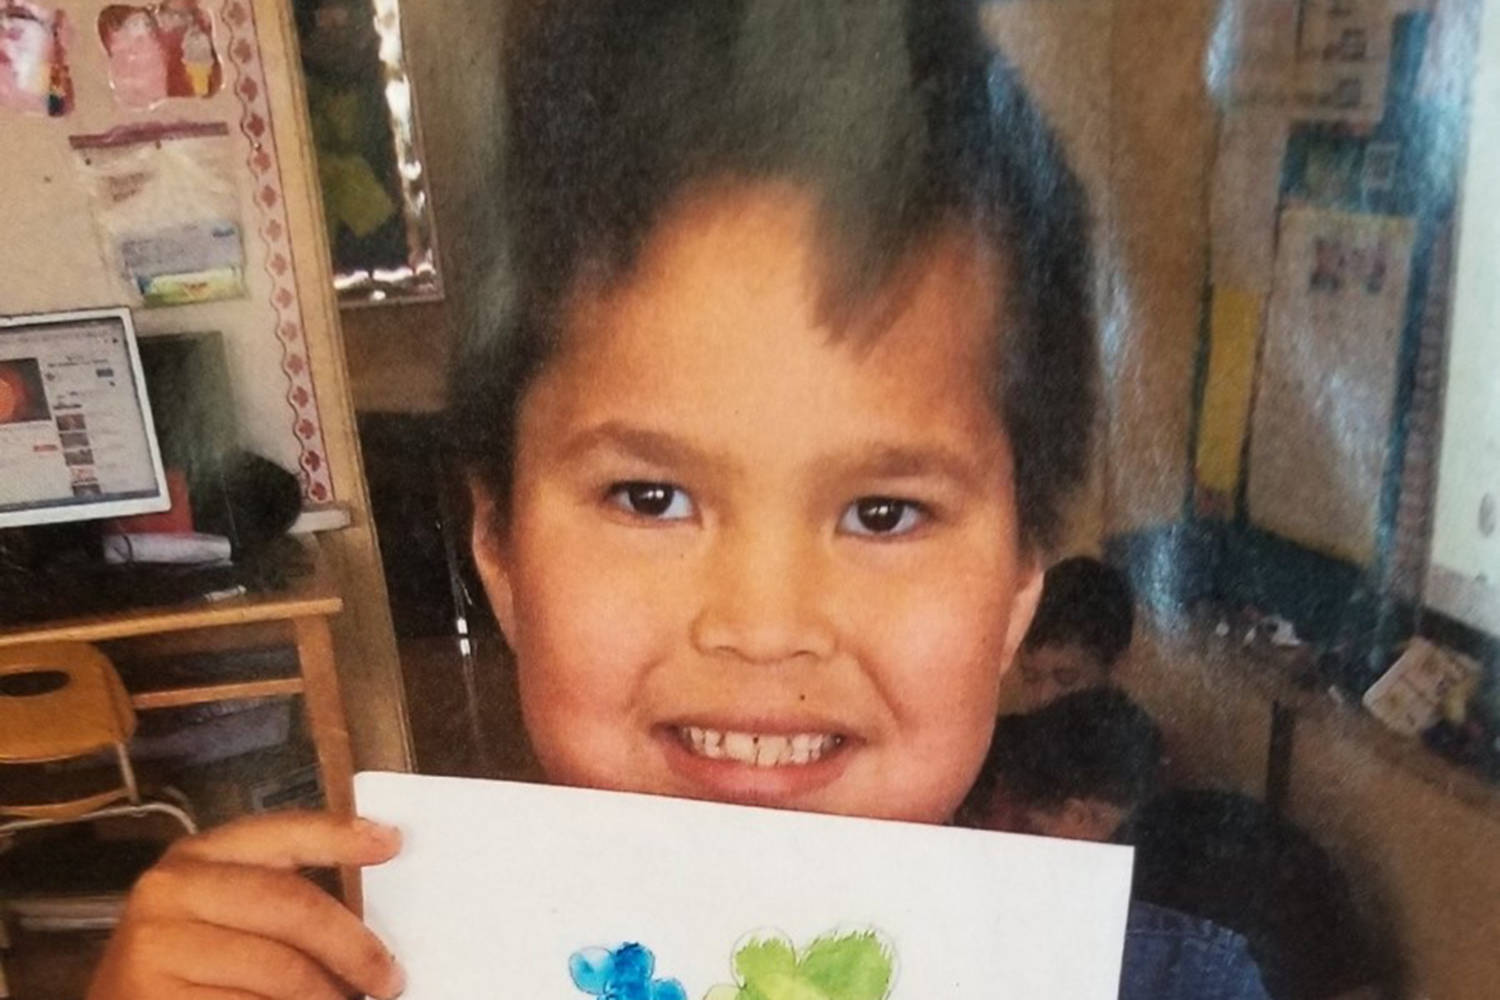 UPDATED: Saanich police have found nine-year-old reported missing